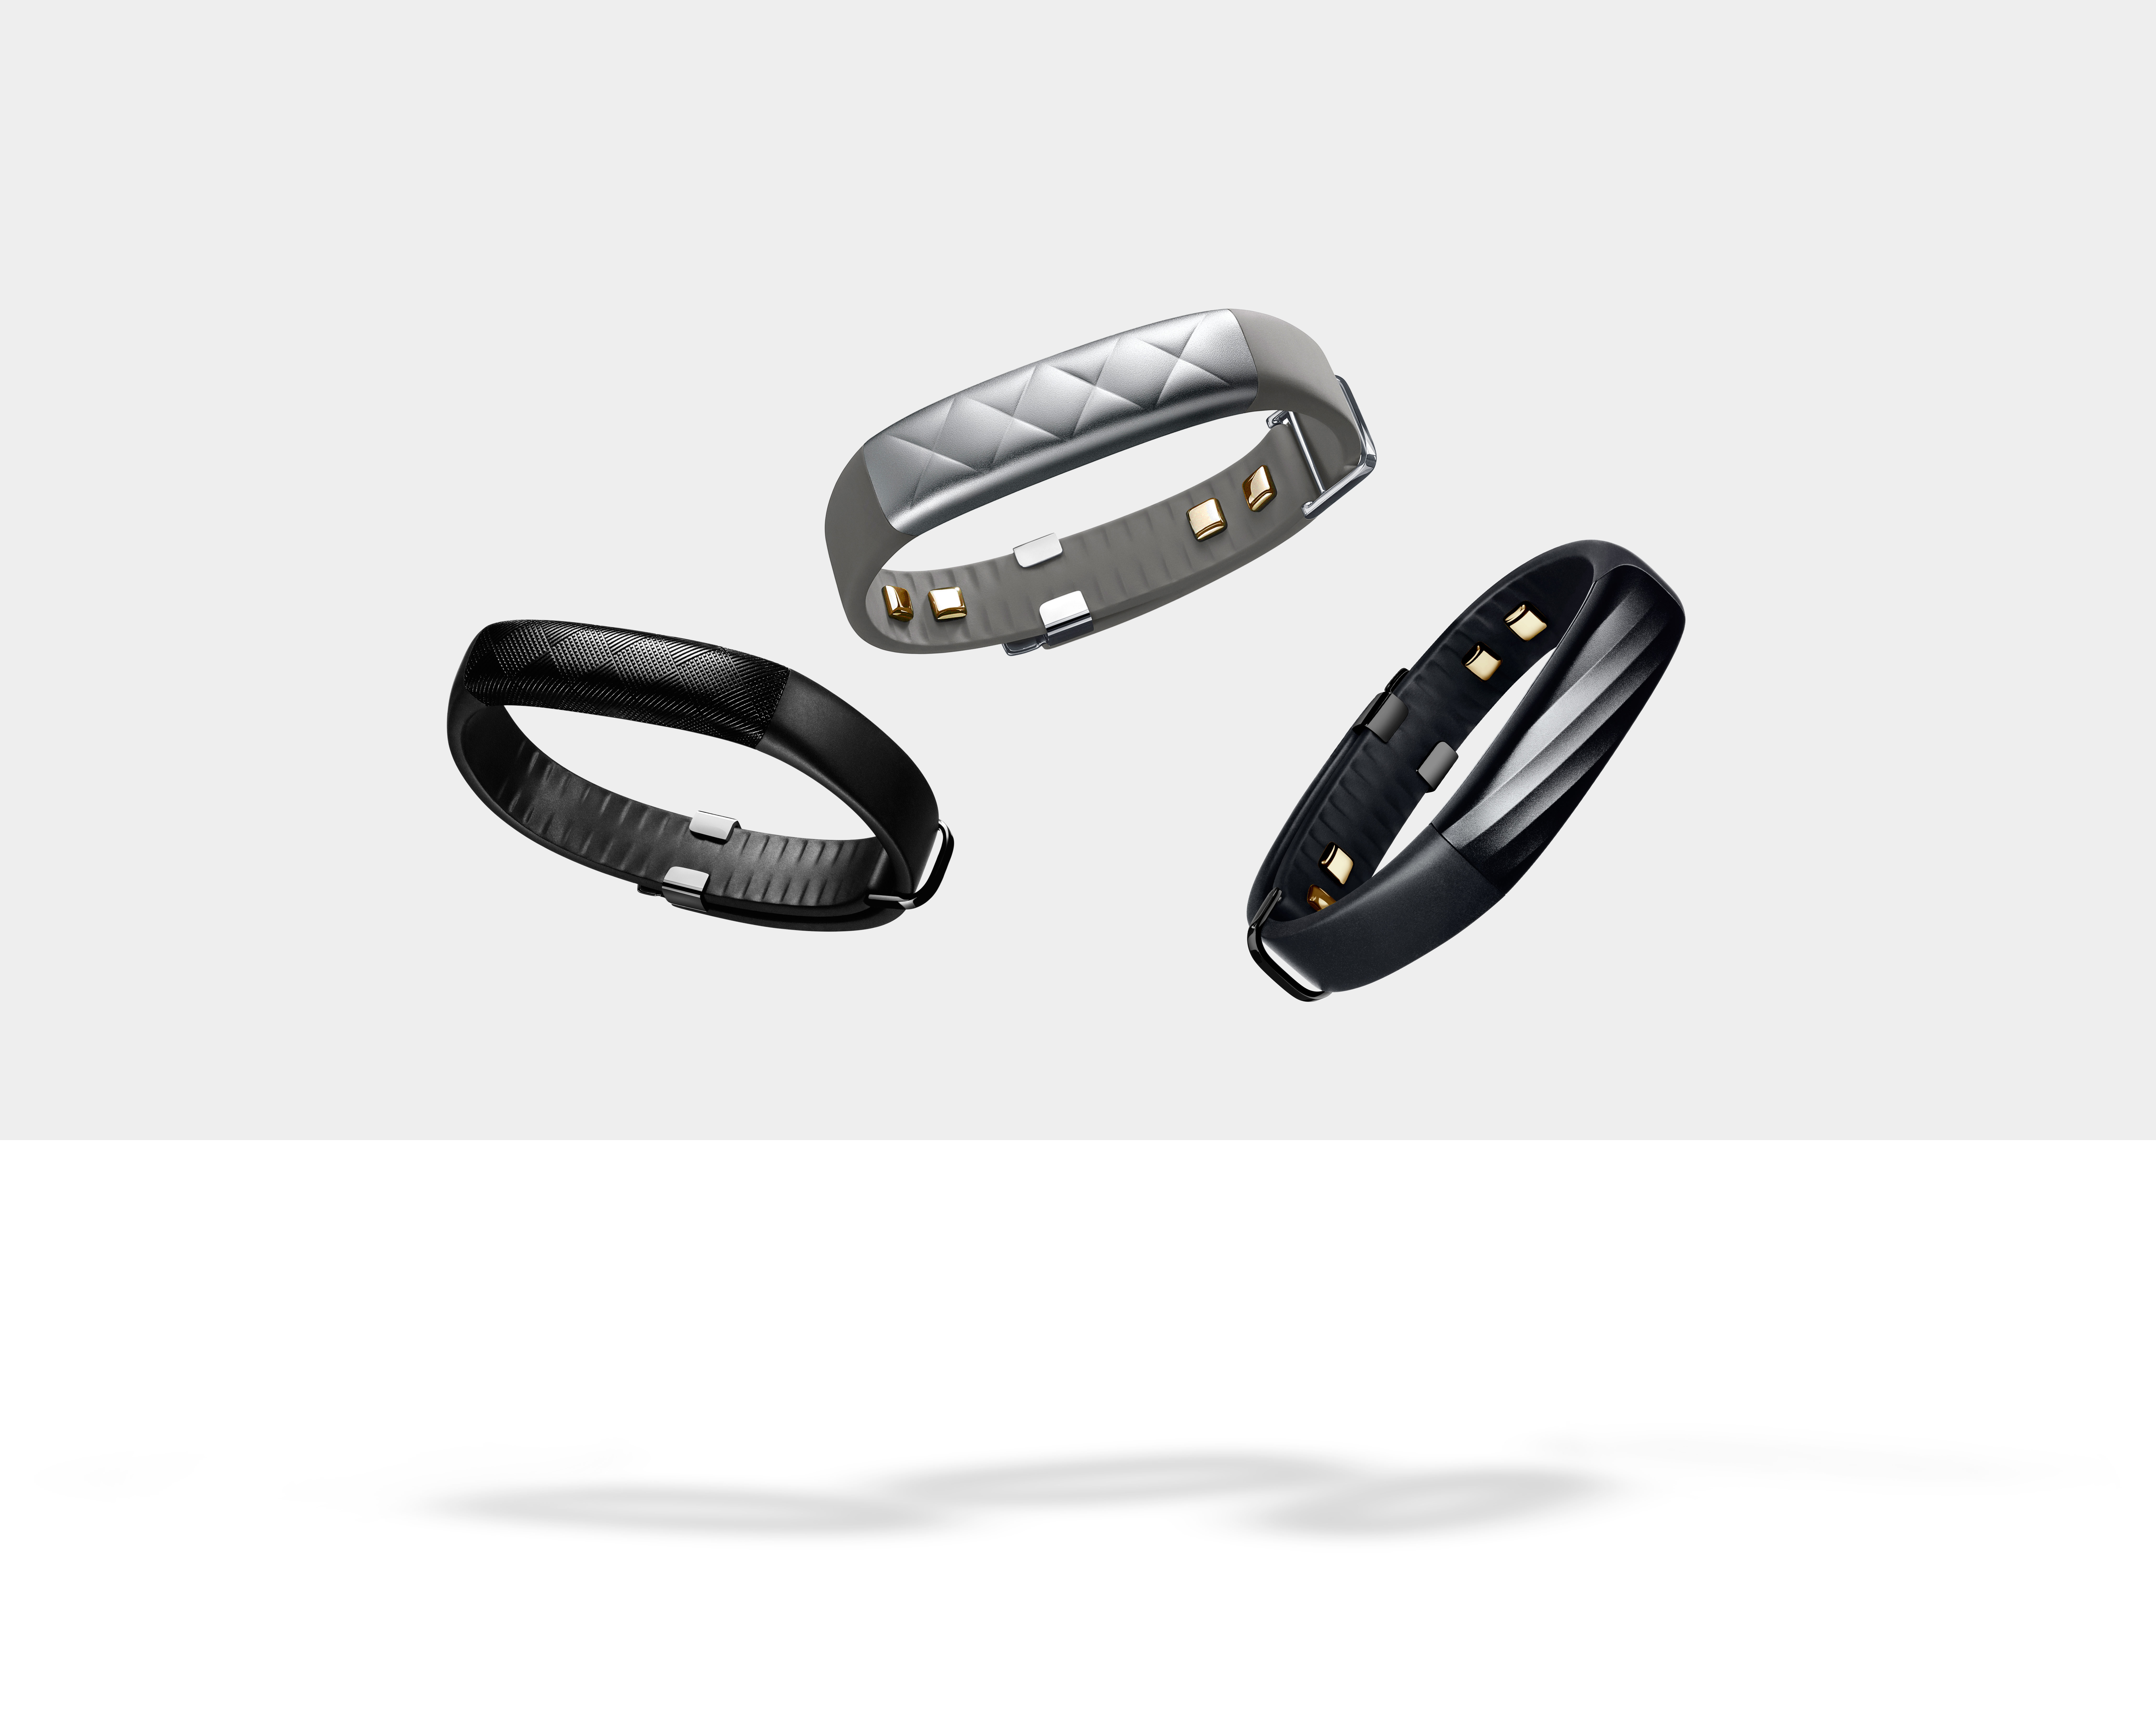 Jawbone's new UP2 and UP3 fitness trackers